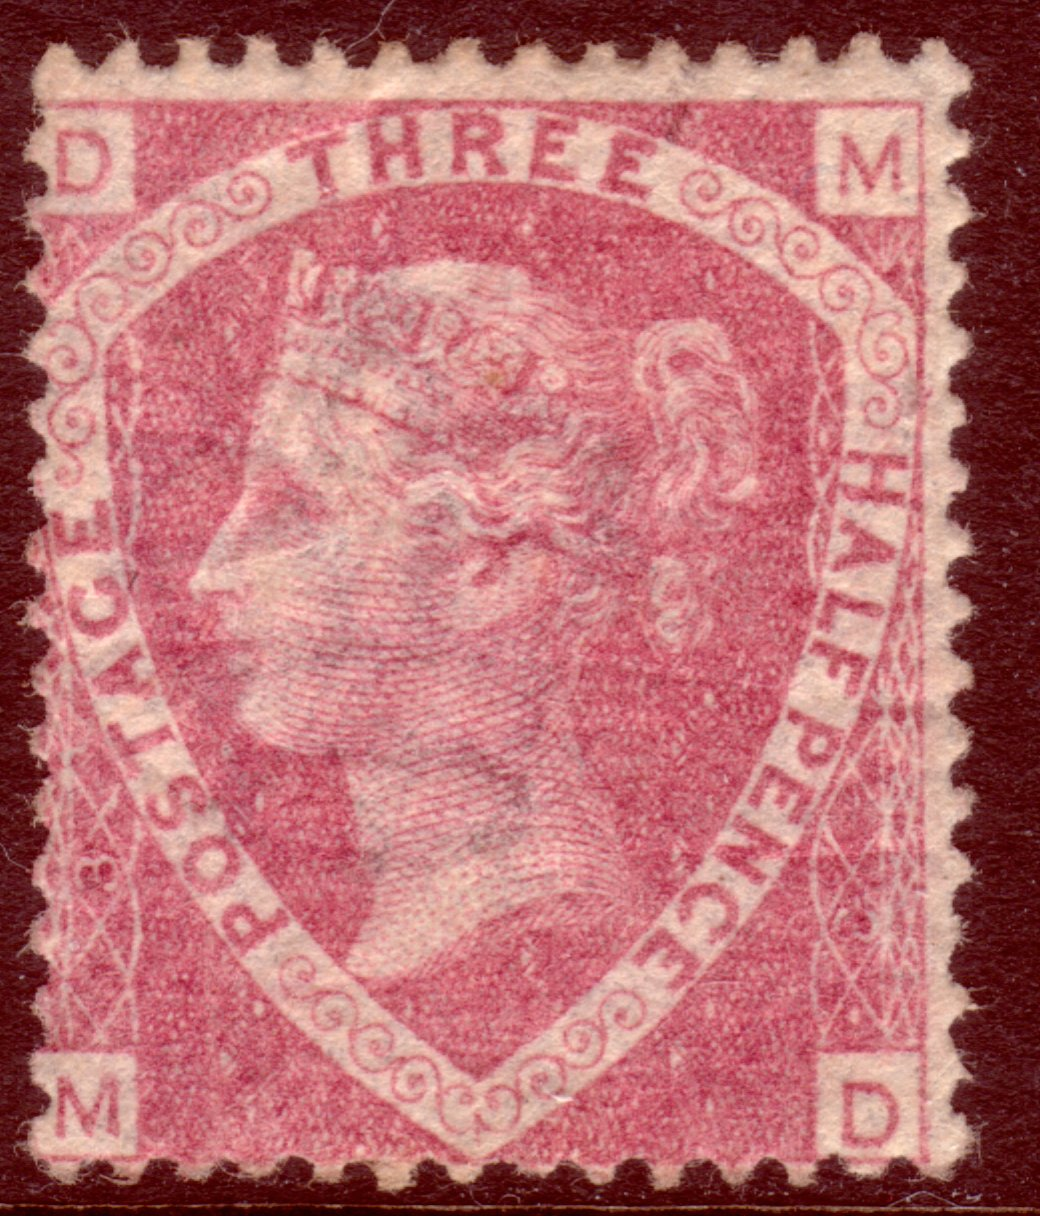 1870 1½d Rose-red Plate 3 Fresh Mint - SOLD